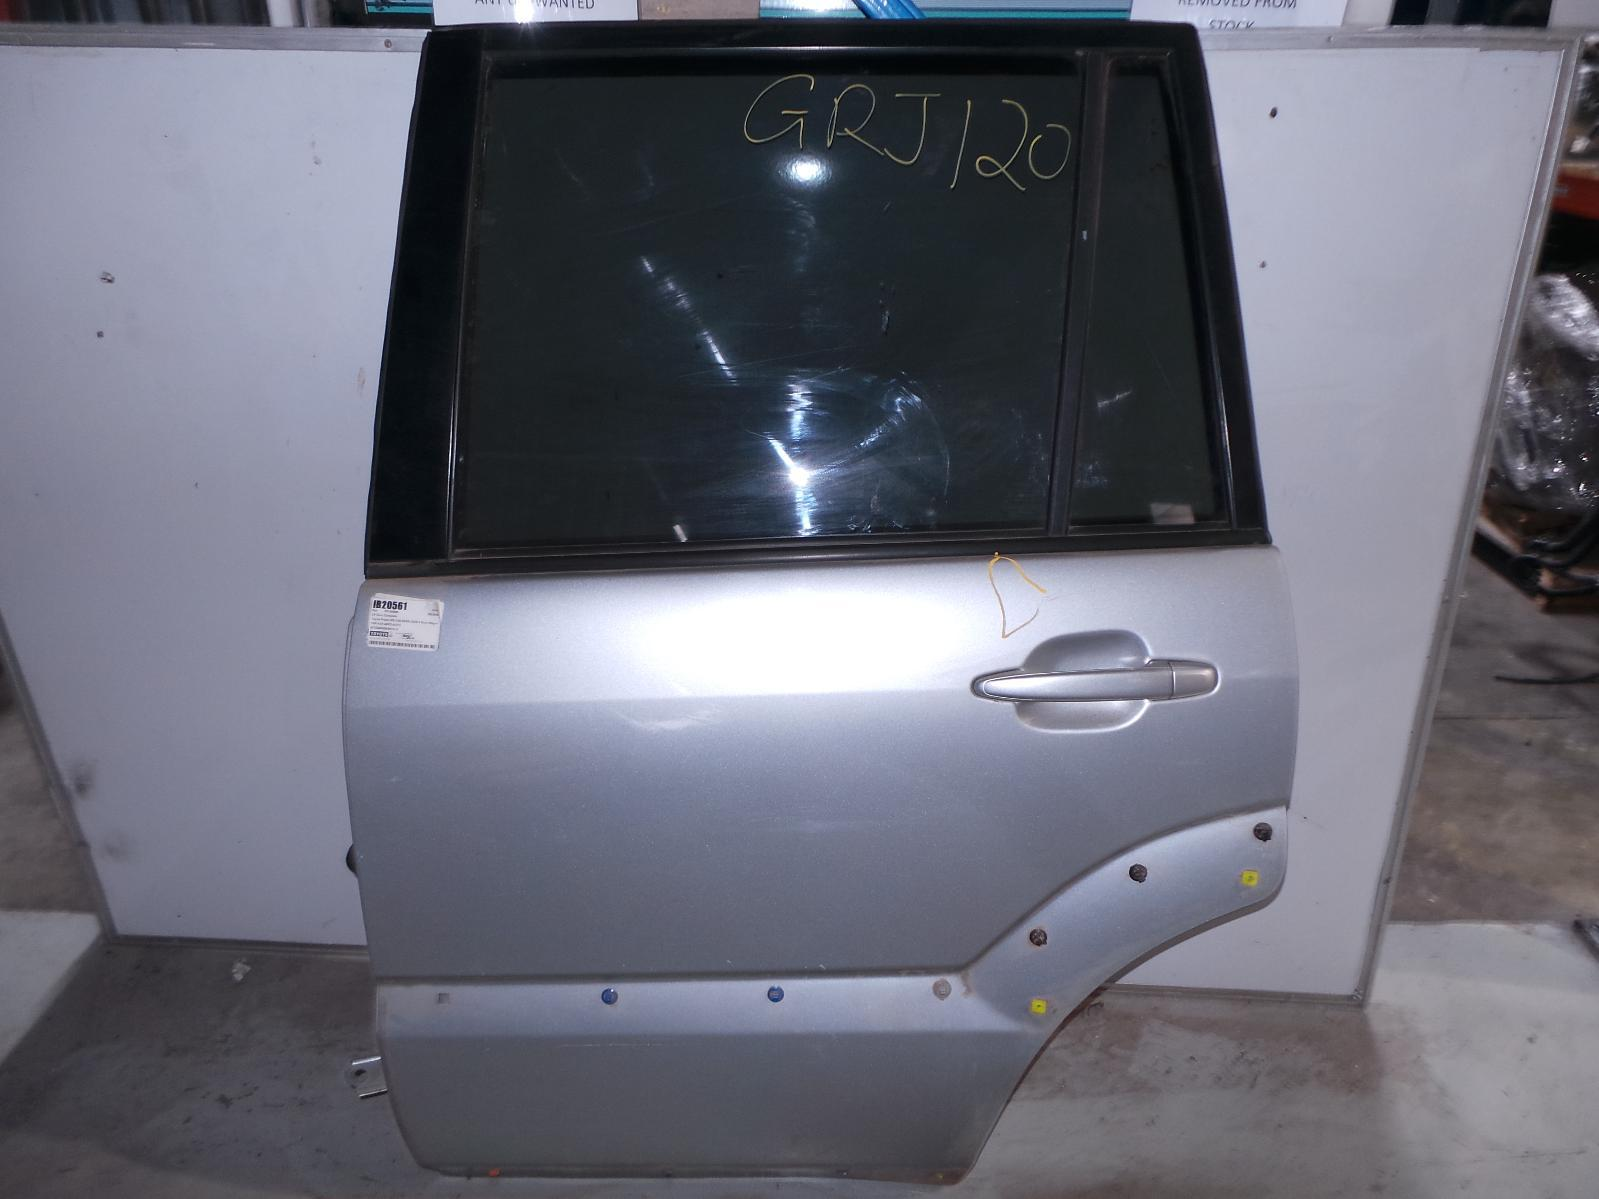 TOYOTA PRADO, Left Rear Door/Sliding, 120 SERIES, FLARED TYPE, 02/03-10/09